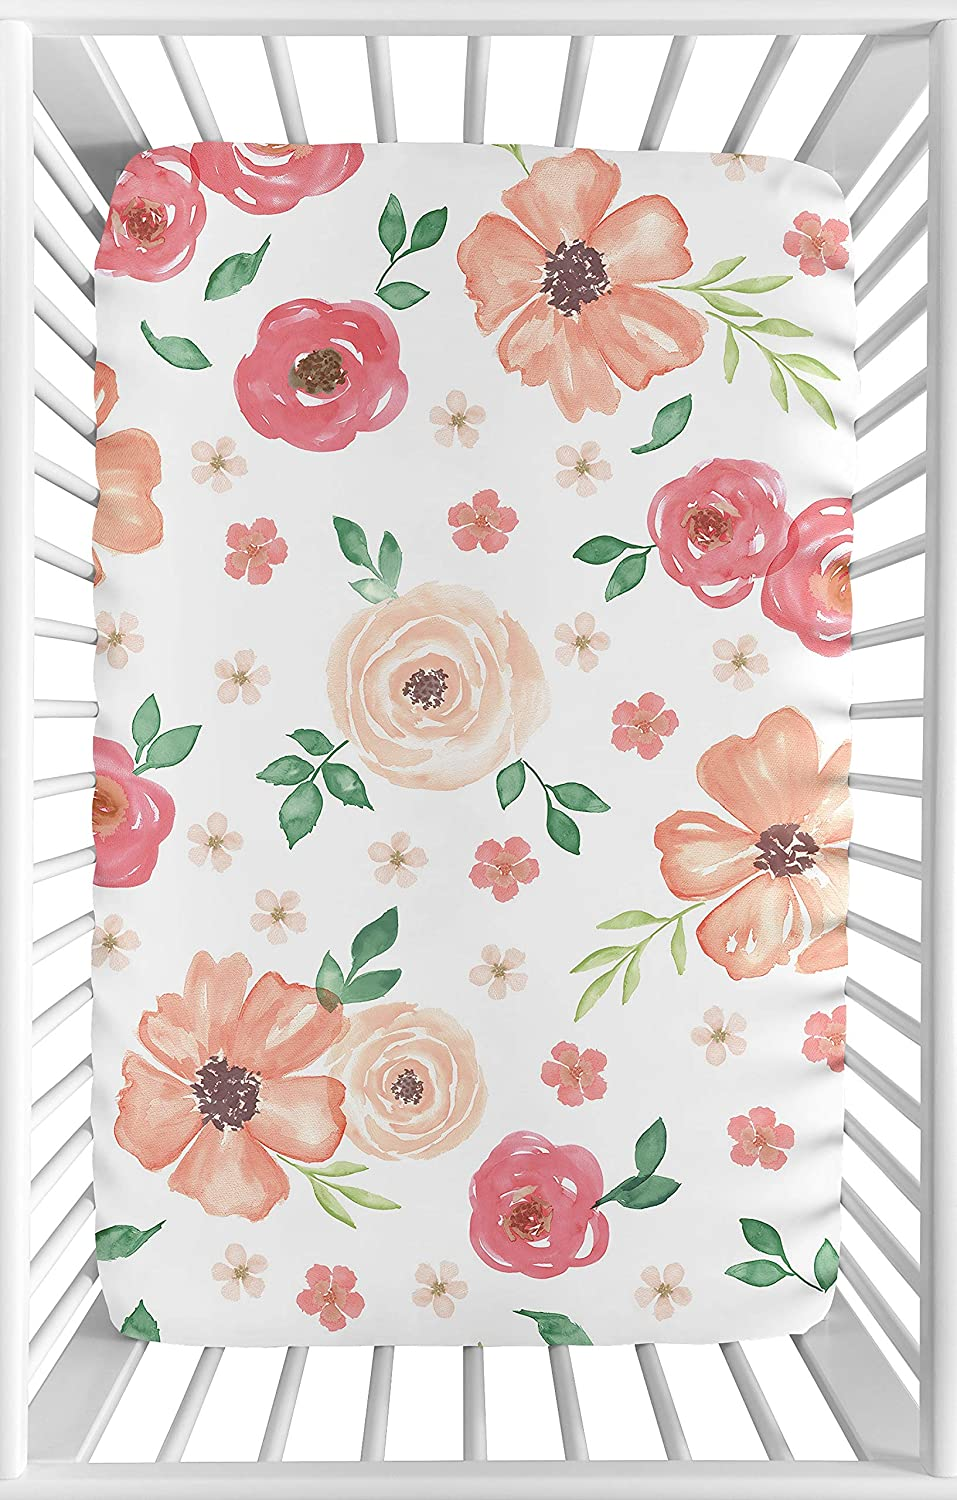 Sweet Jojo Designs Peach and Green Baby Girl Fitted Mini Portable Crib Sheet for Watercolor Floral Collection - Pink Rose Flower - for Mini Crib or Pack and Play ONLY